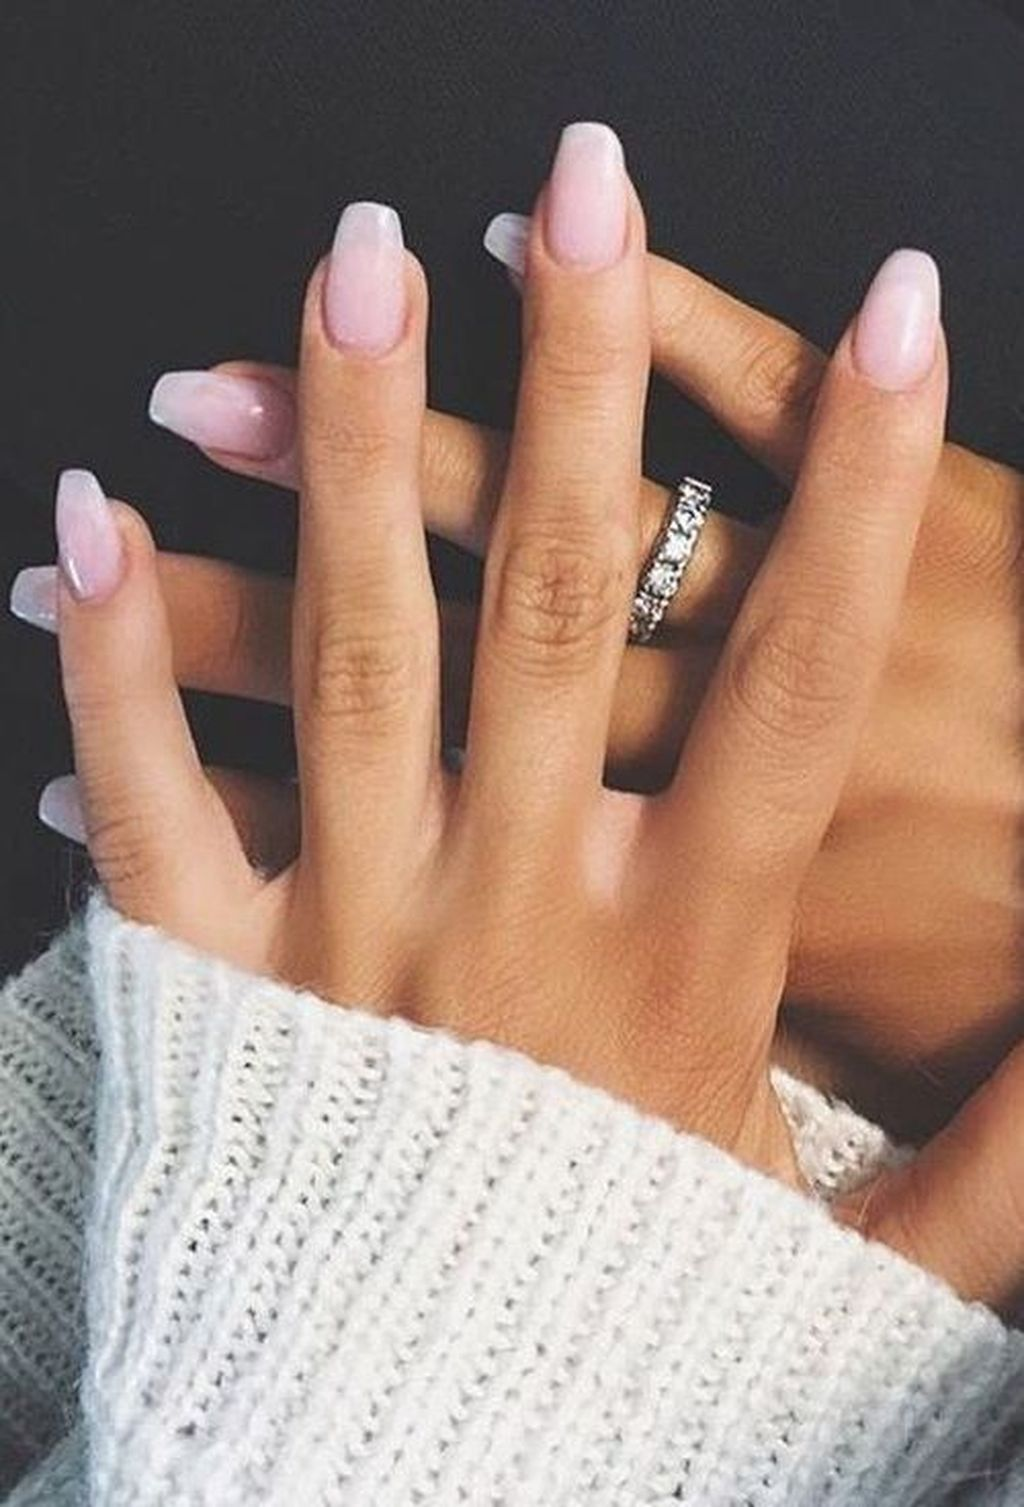 30 Best Winter Nails Ideas To Wear This Year Fall Acrylic Nails Short Square Acrylic Nails Square Acrylic Nails